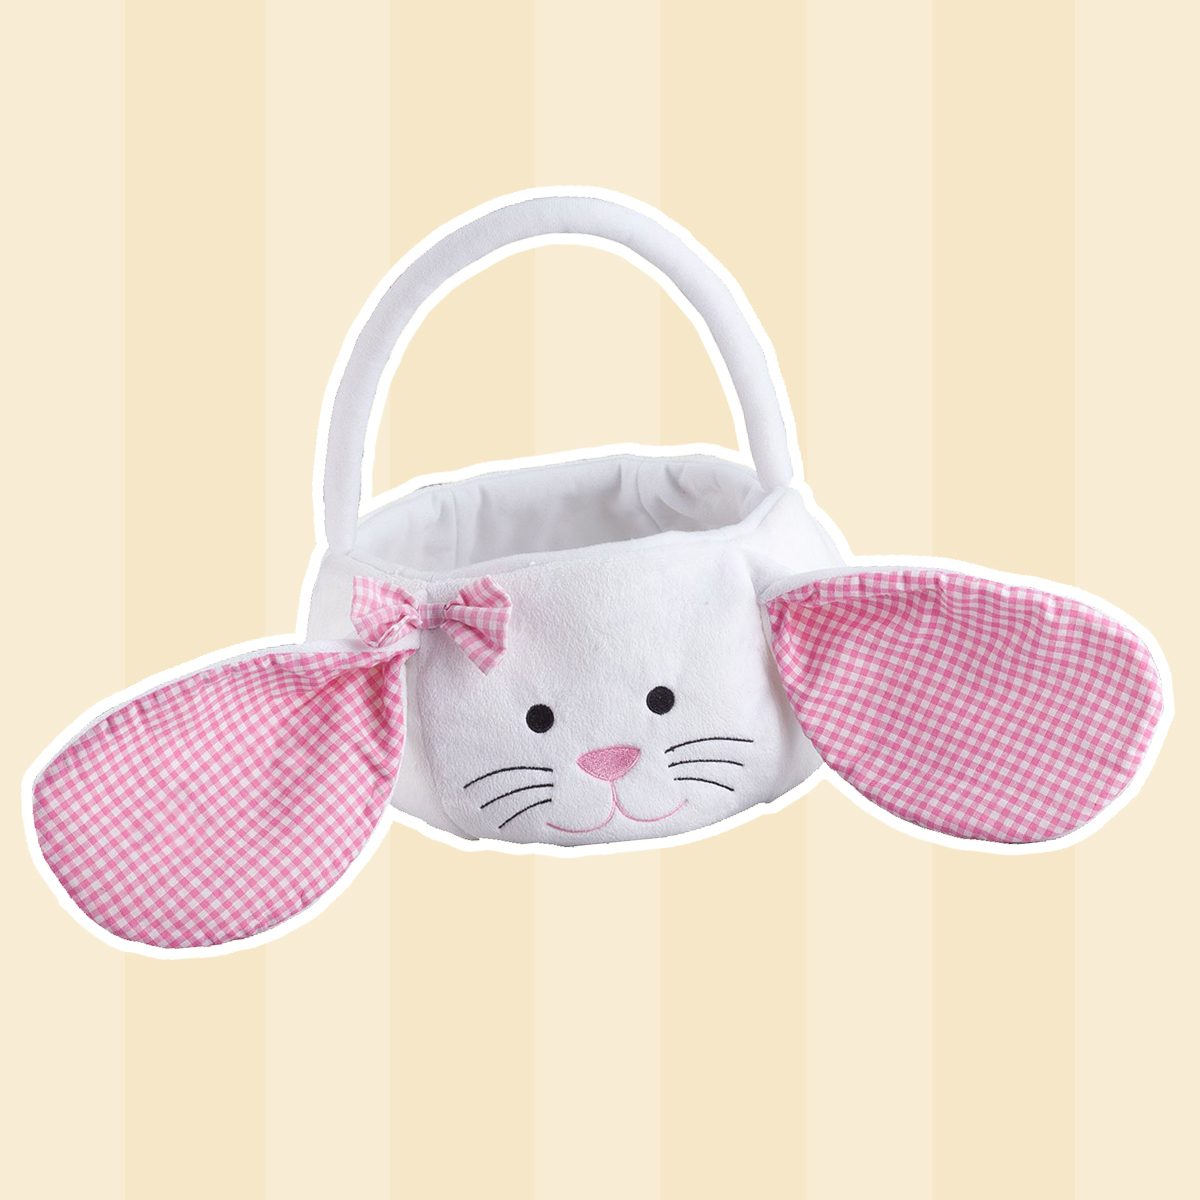 Plush White Bunny with Floppy Gingham Ears